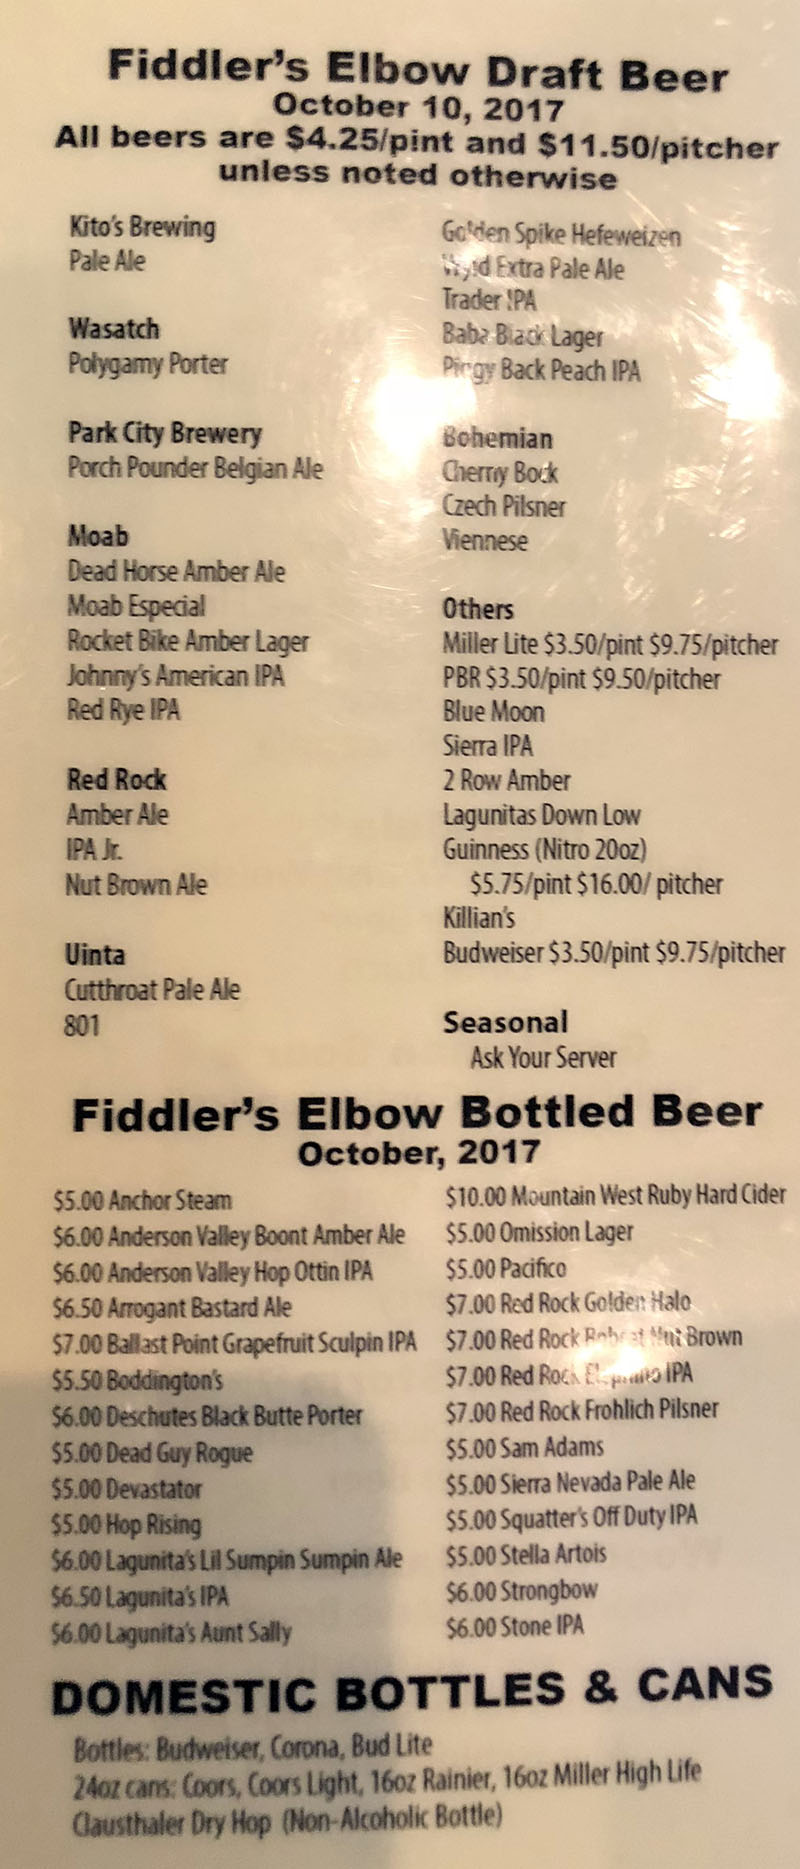 Fiddler's Elbow menu - draft beer, bottled beer, canned beer